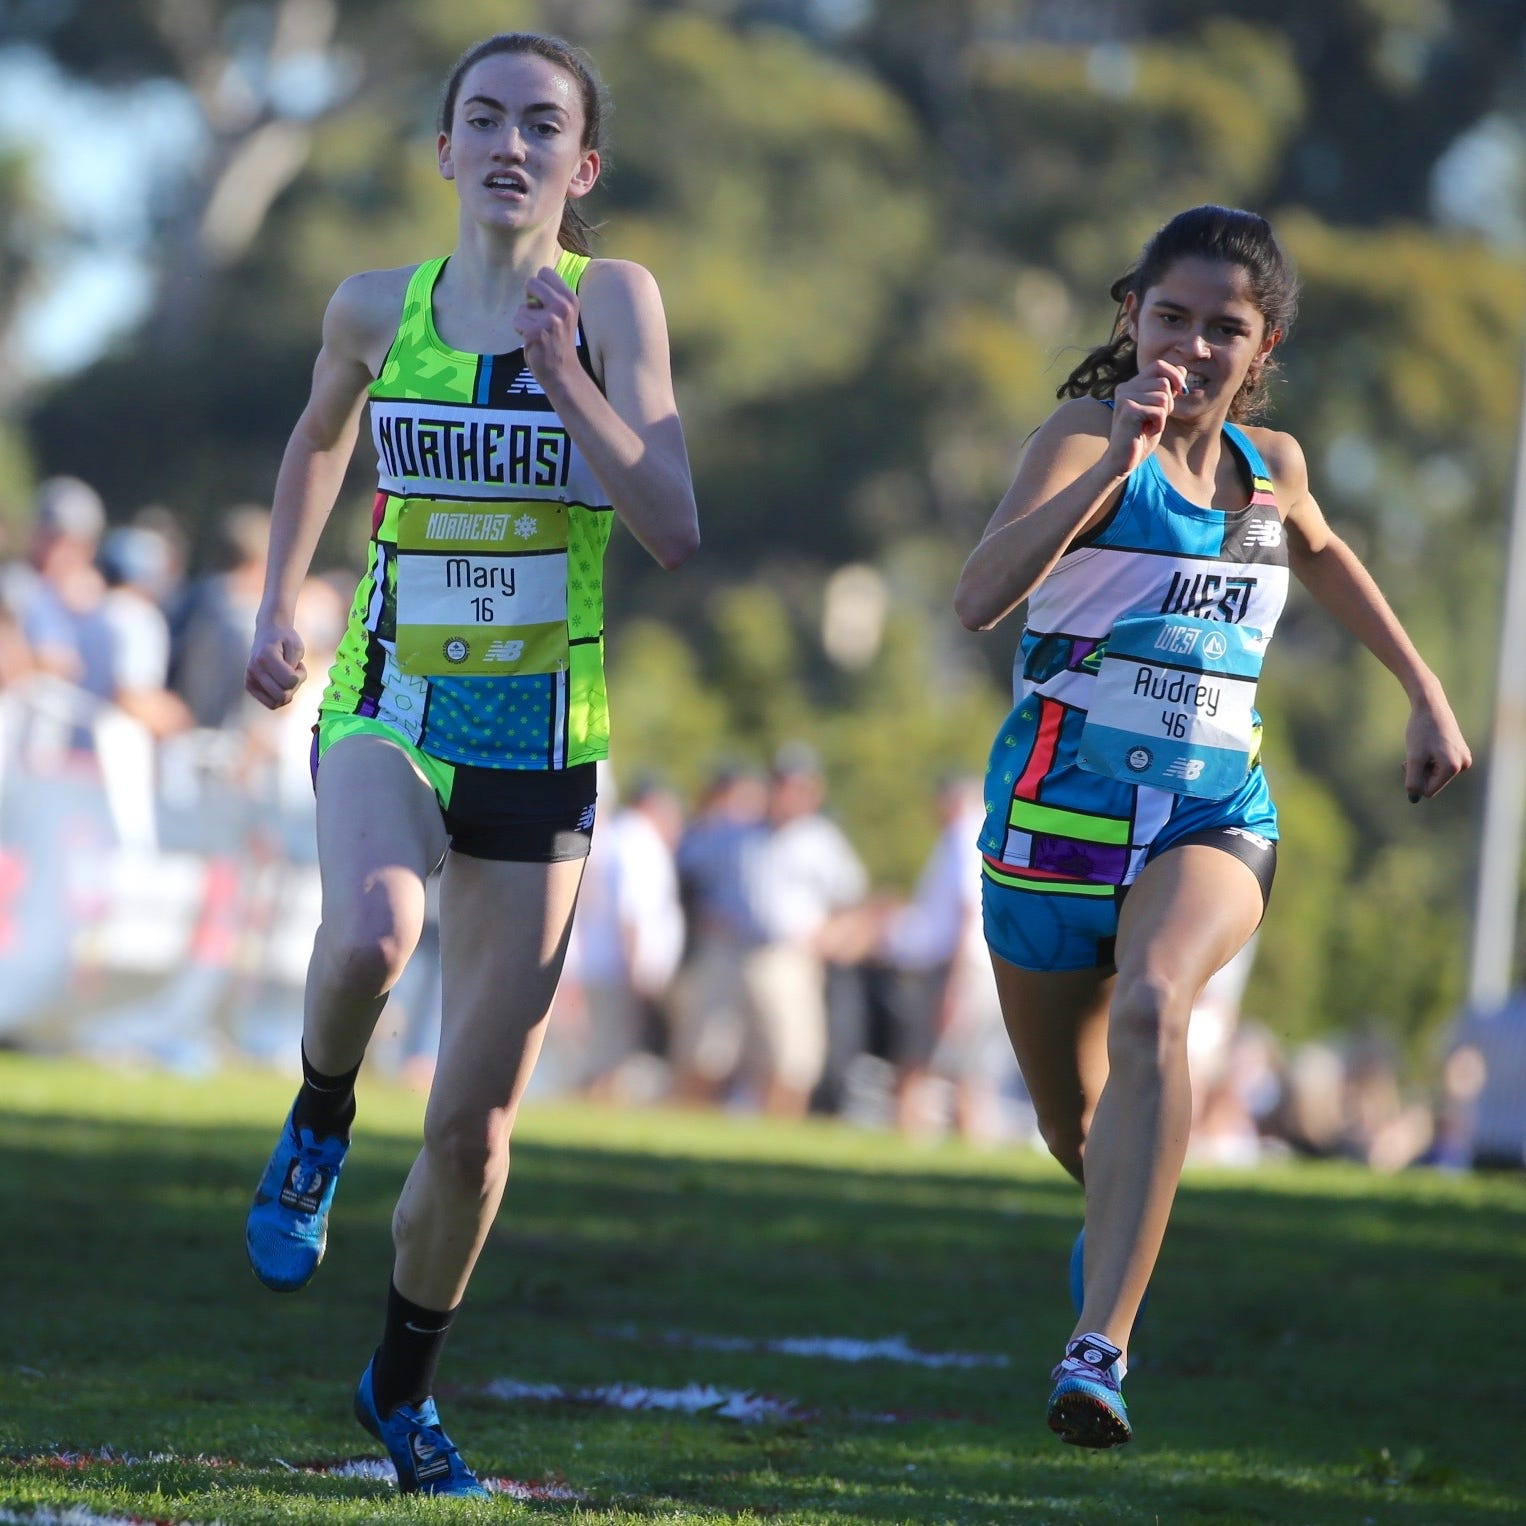 Cross-country: Suffern's Hennelly meets goal, is 29th at Foot Locker Nationals